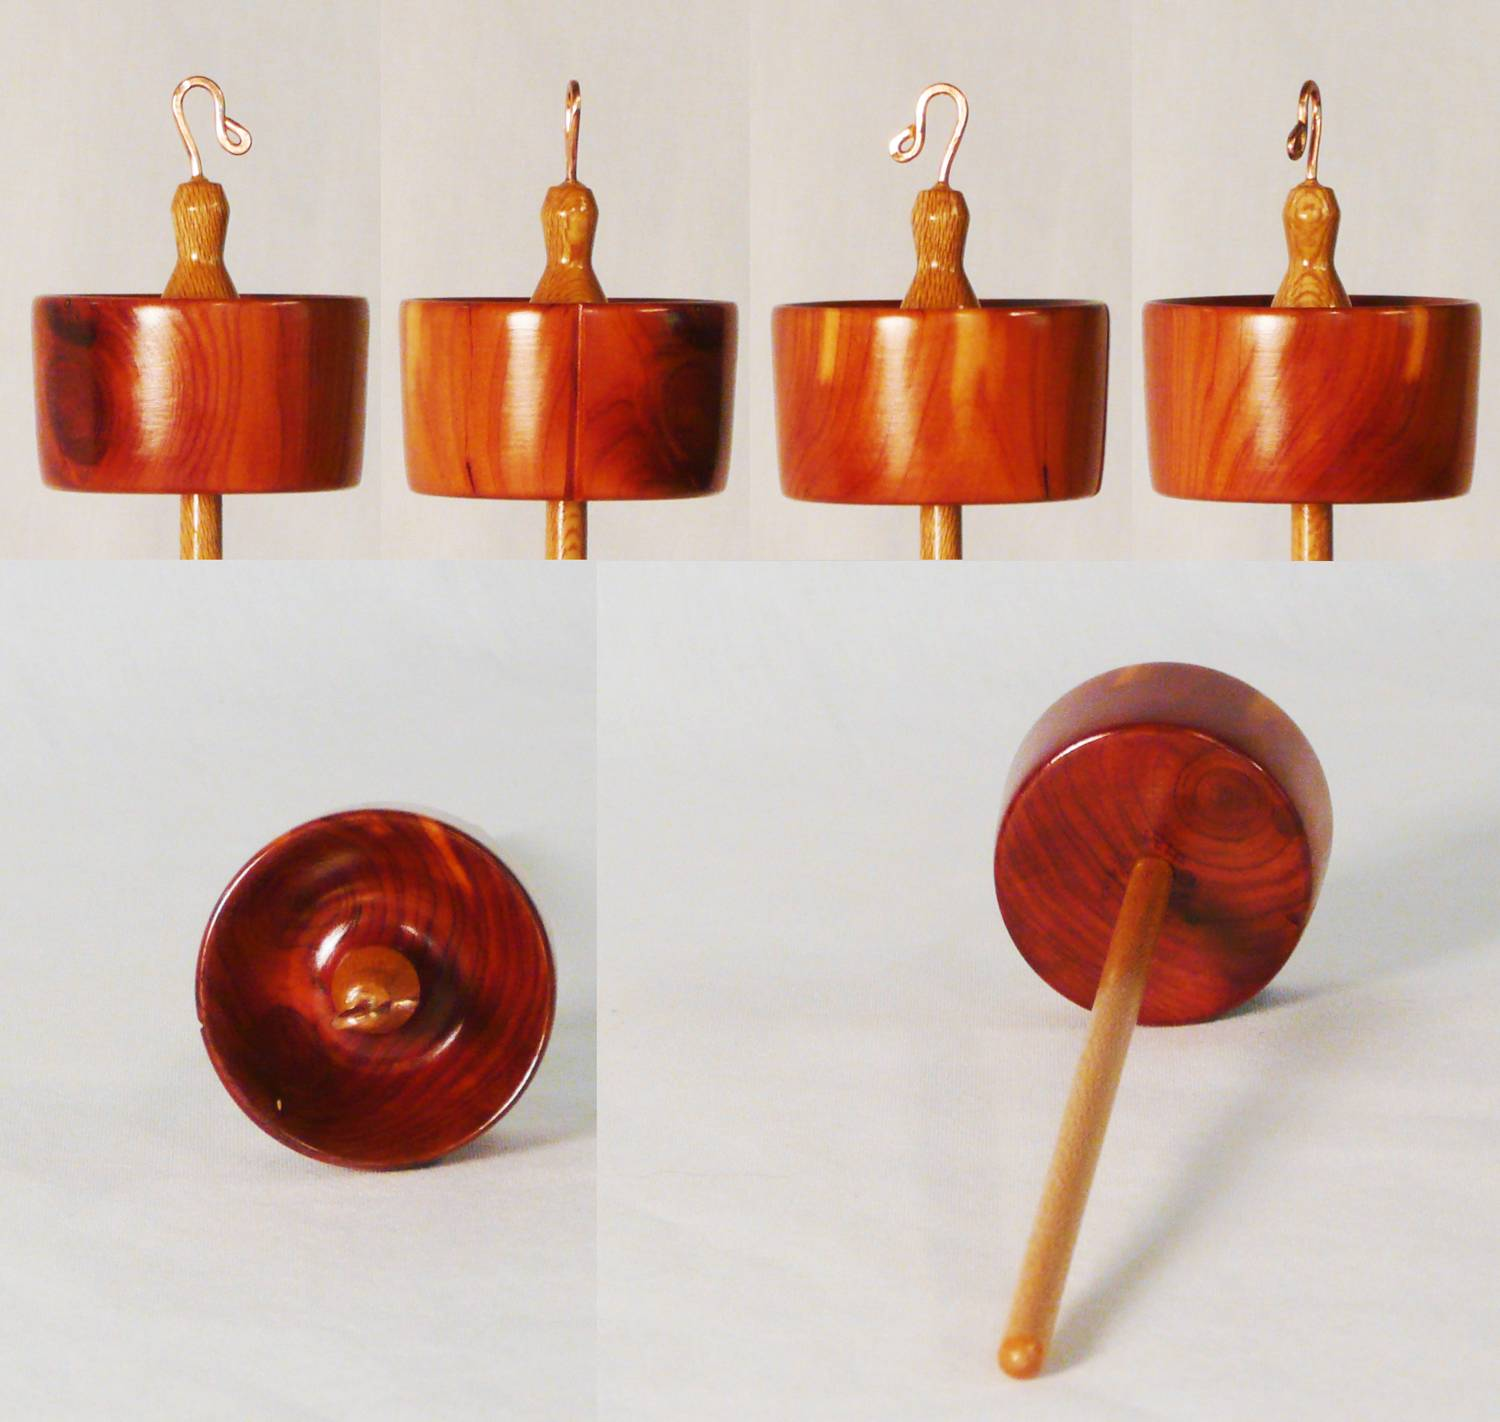 Drop spindle in Cedar and Sycamore hand turned by Cynthia D. Haney # 134 3/4 oz.